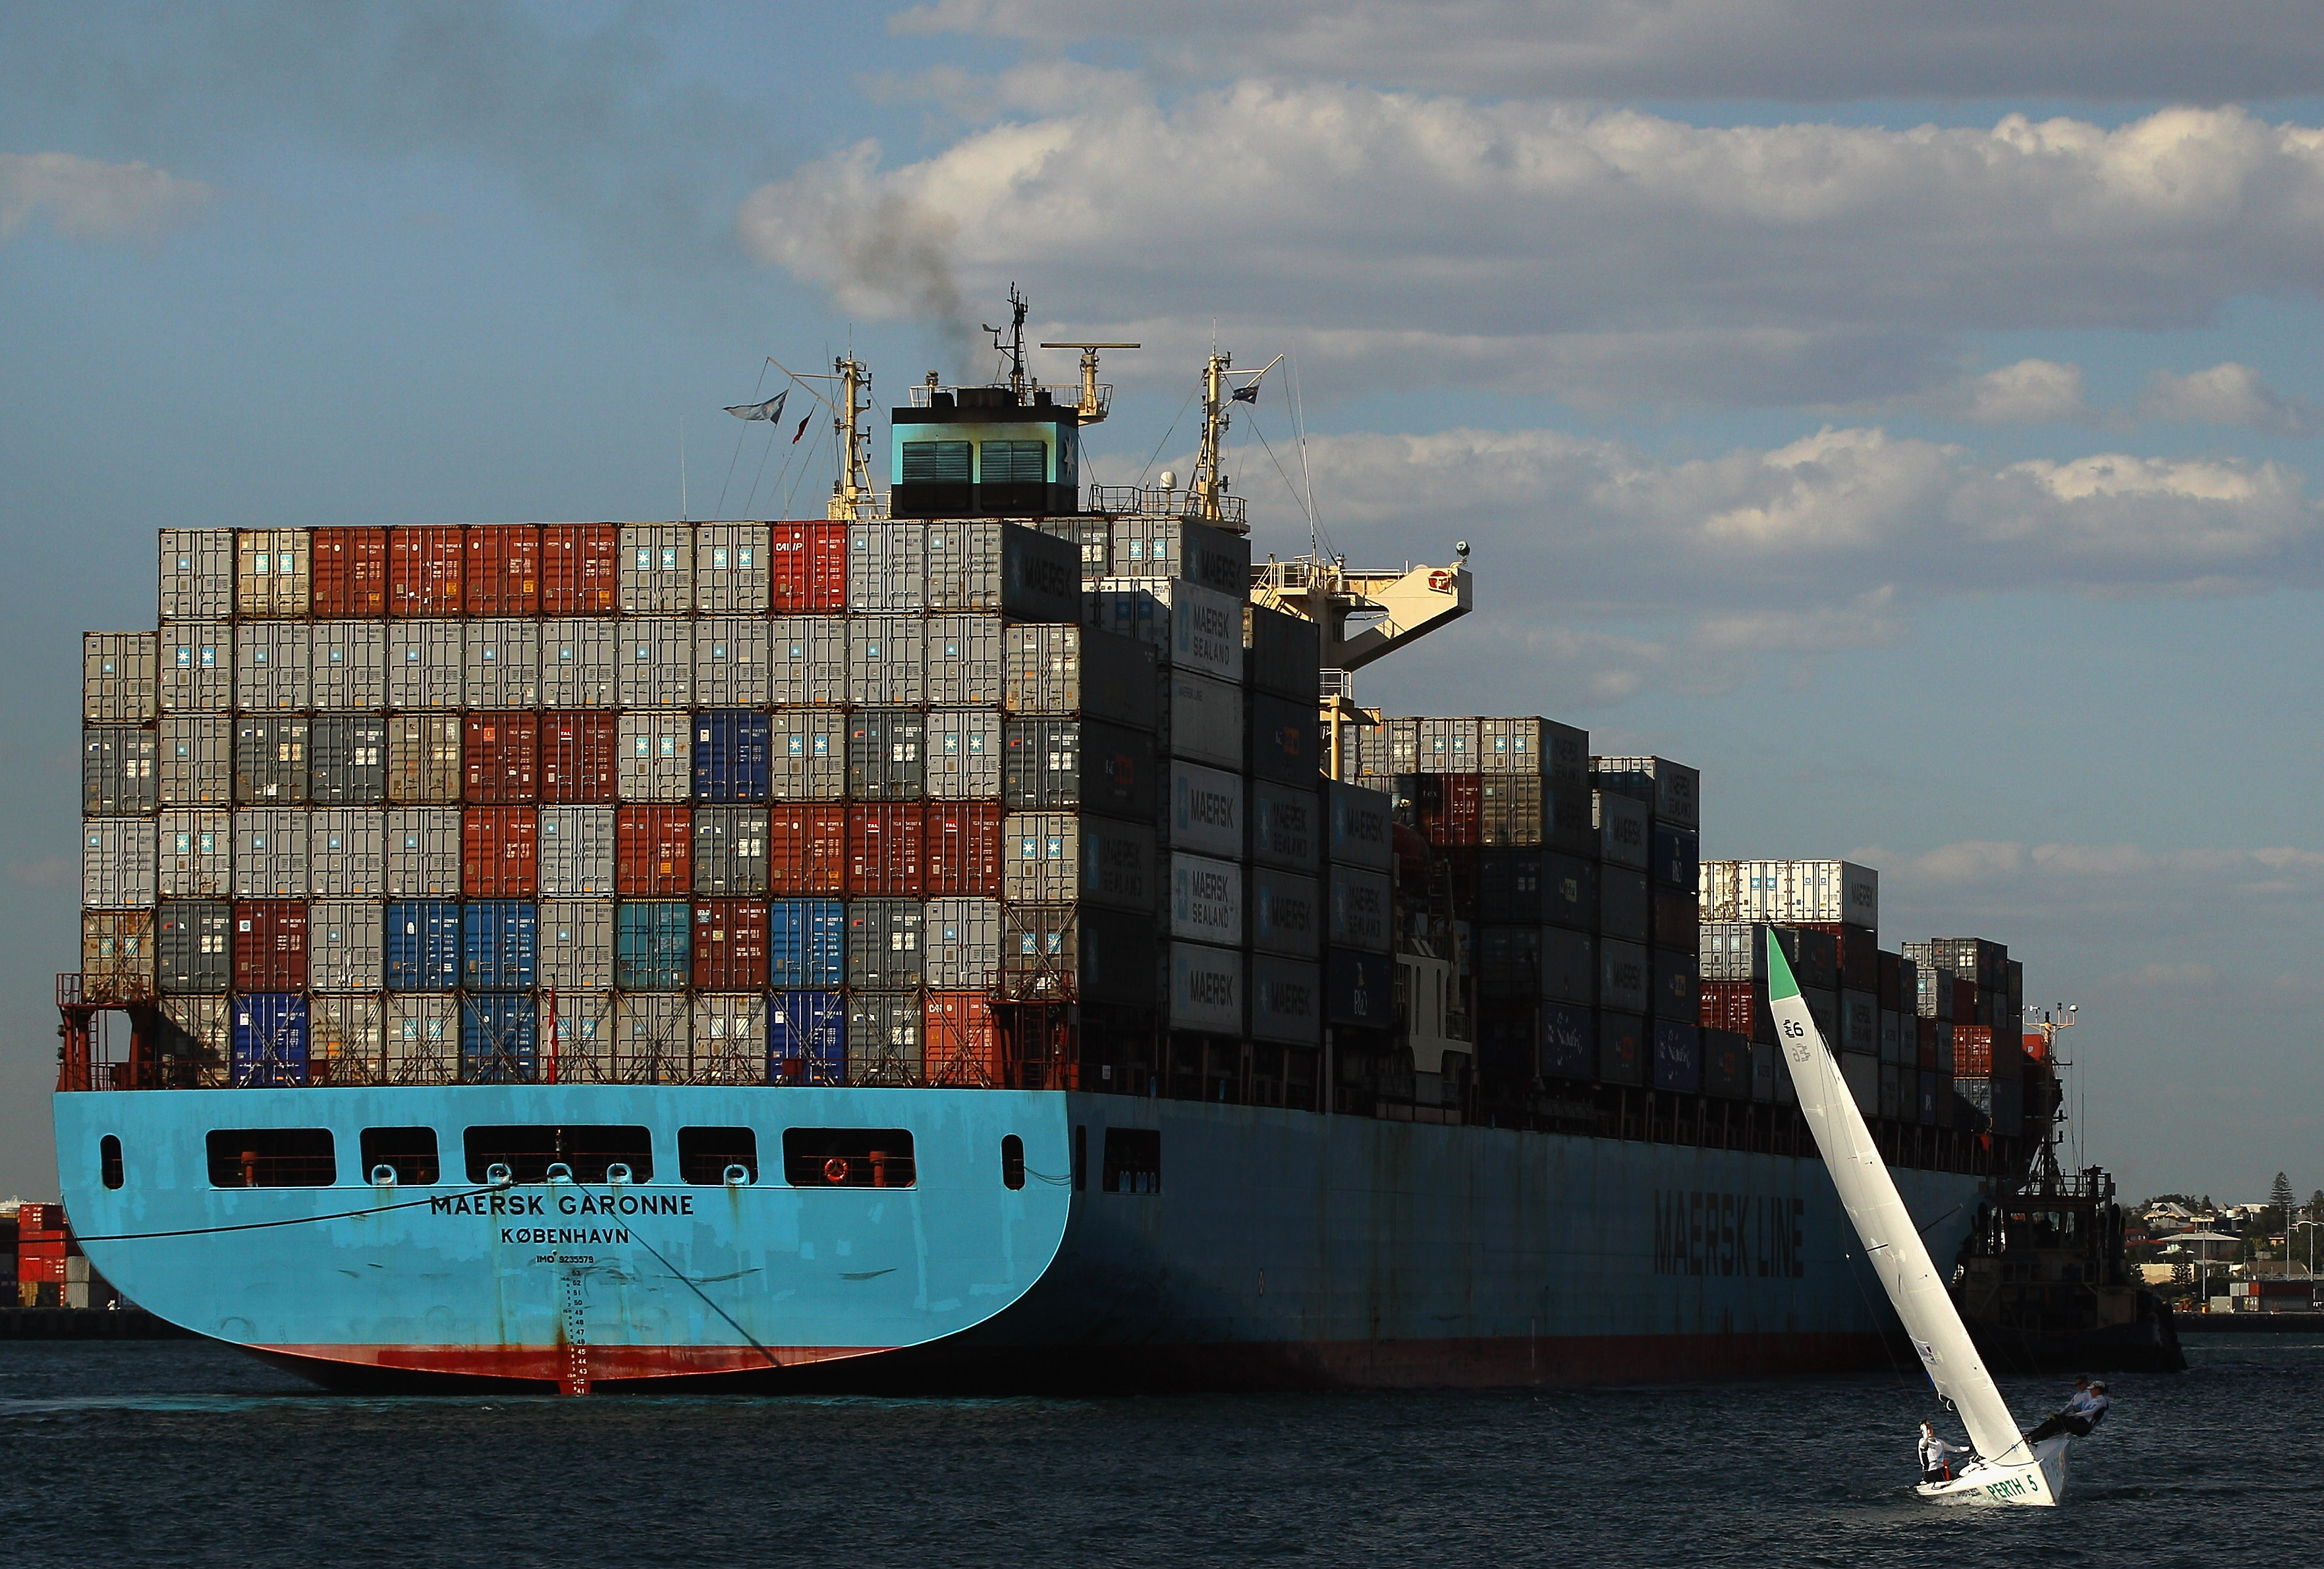 Russian cargo ship allegedly full of explosives detained in PE harbour